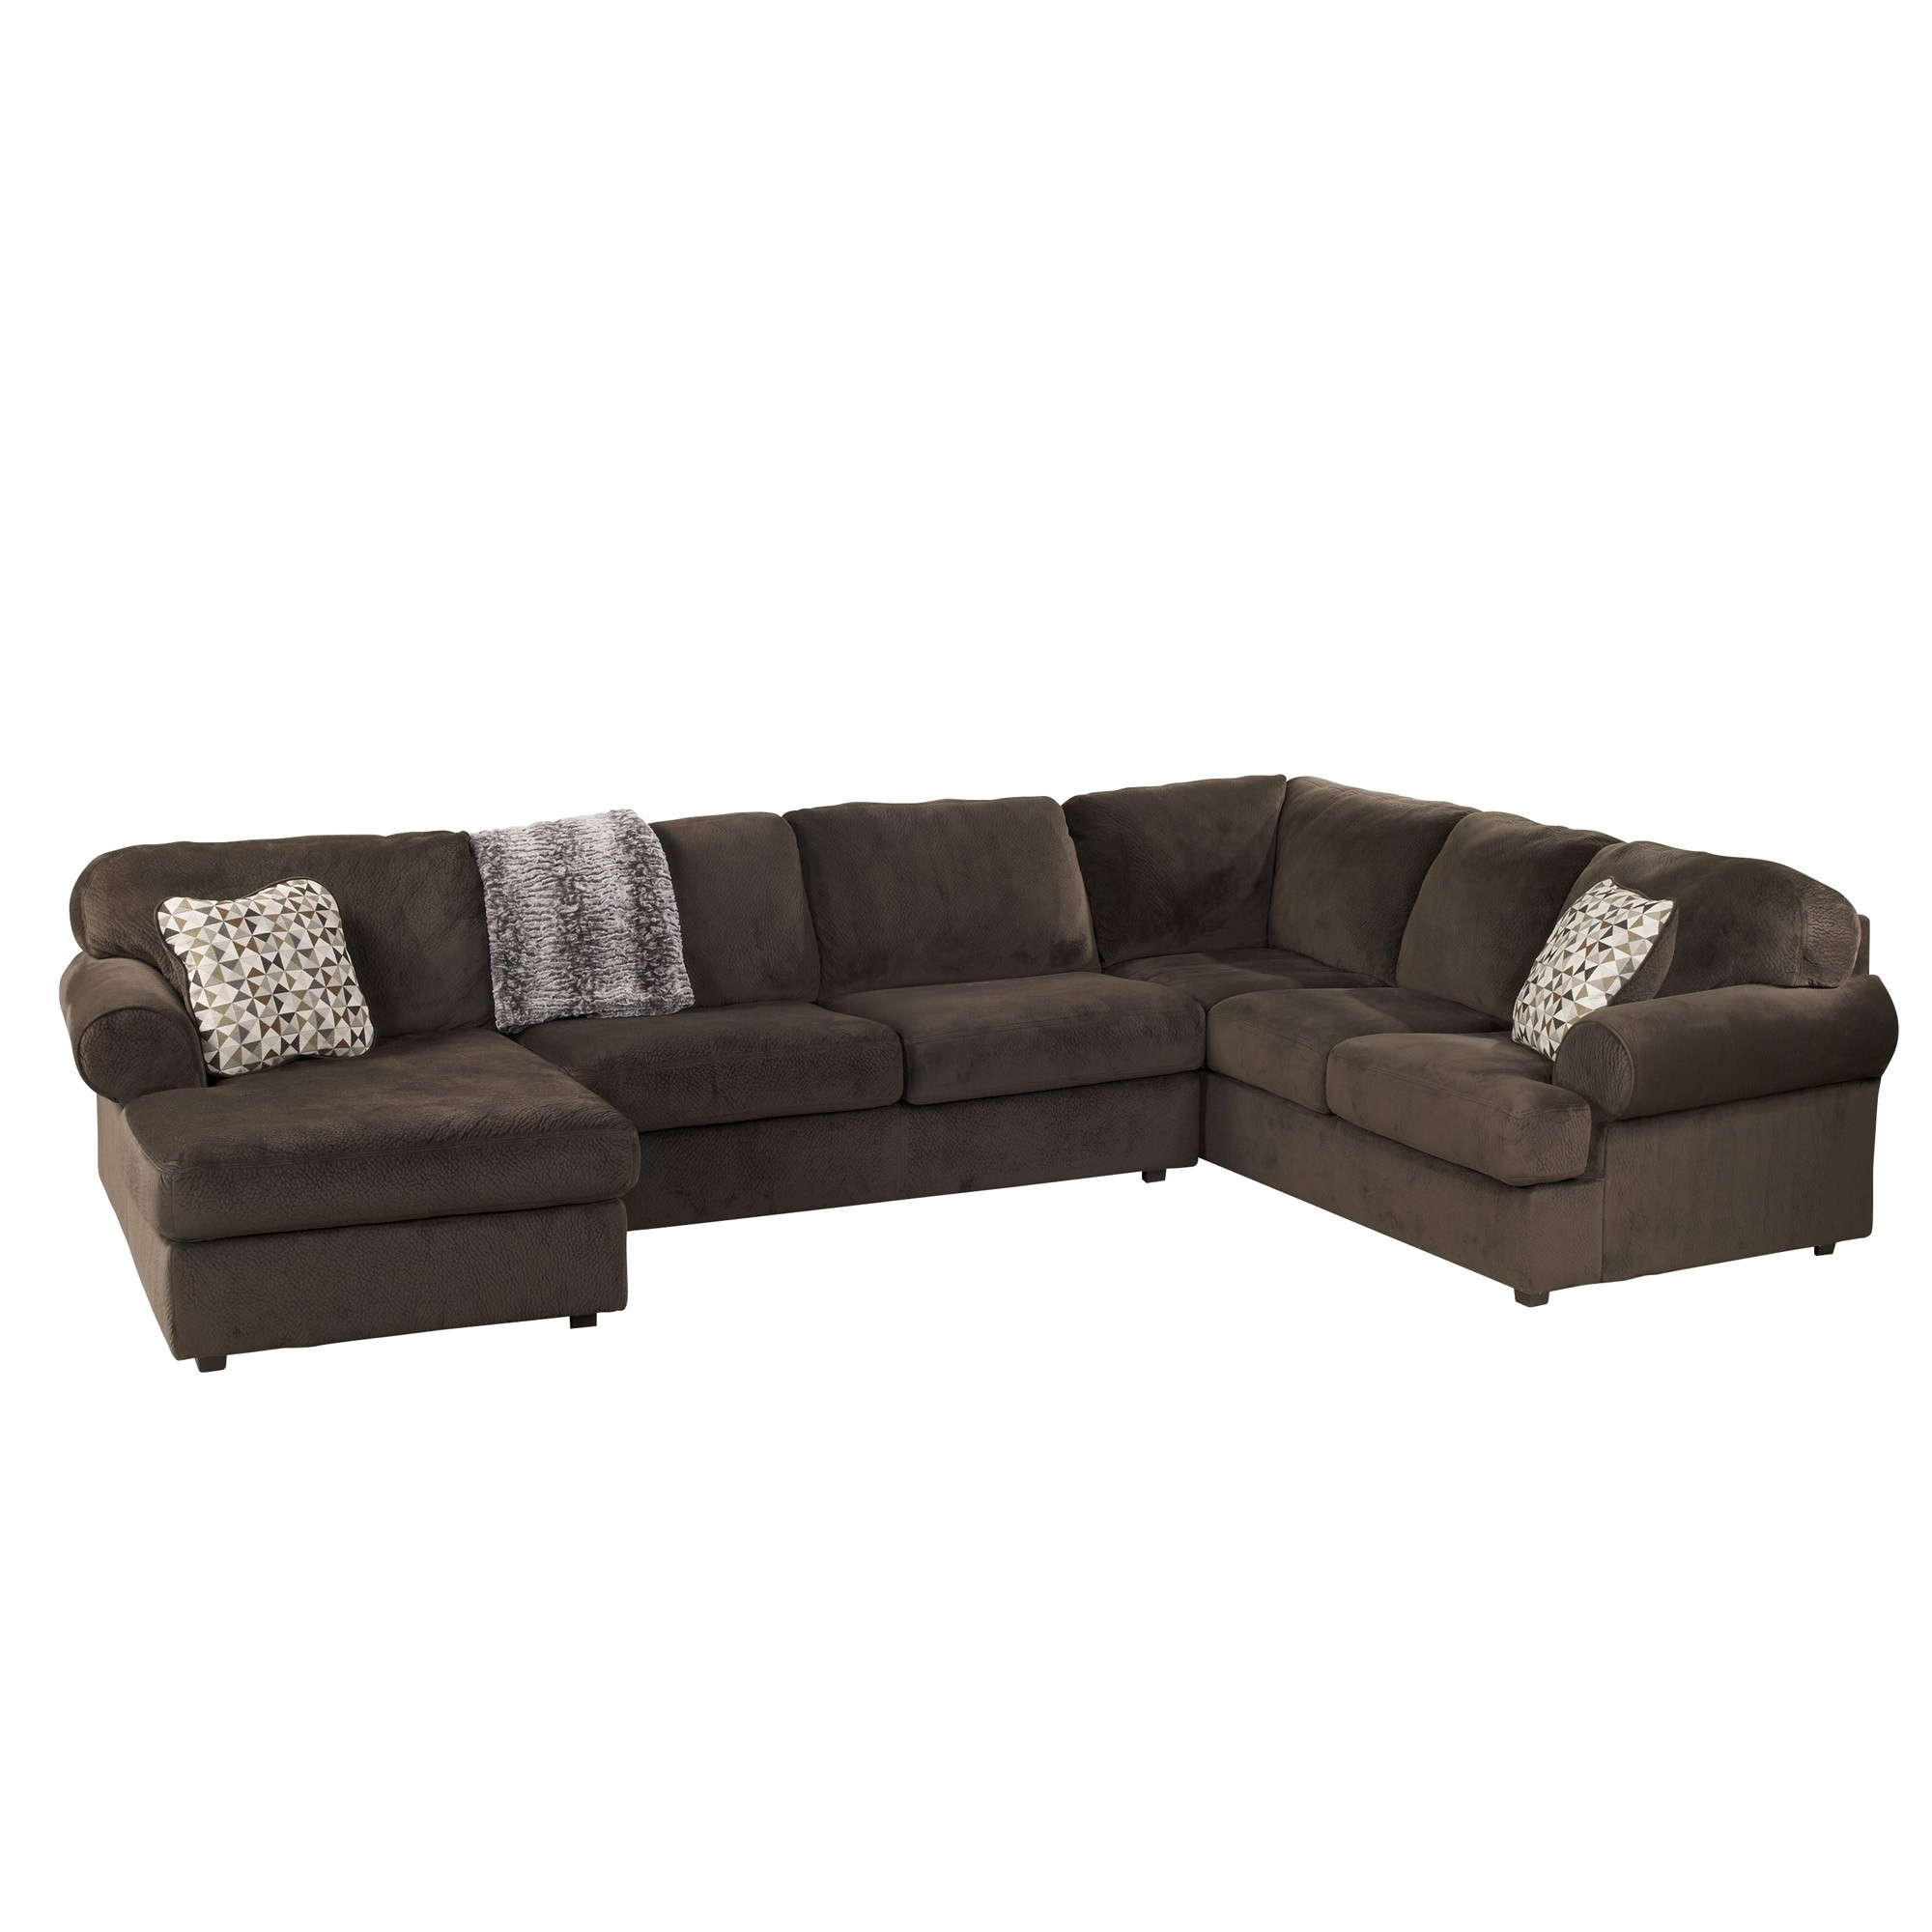 Sectionals | Tepperman's Regarding Teppermans Sectional Sofas (Image 8 of 10)